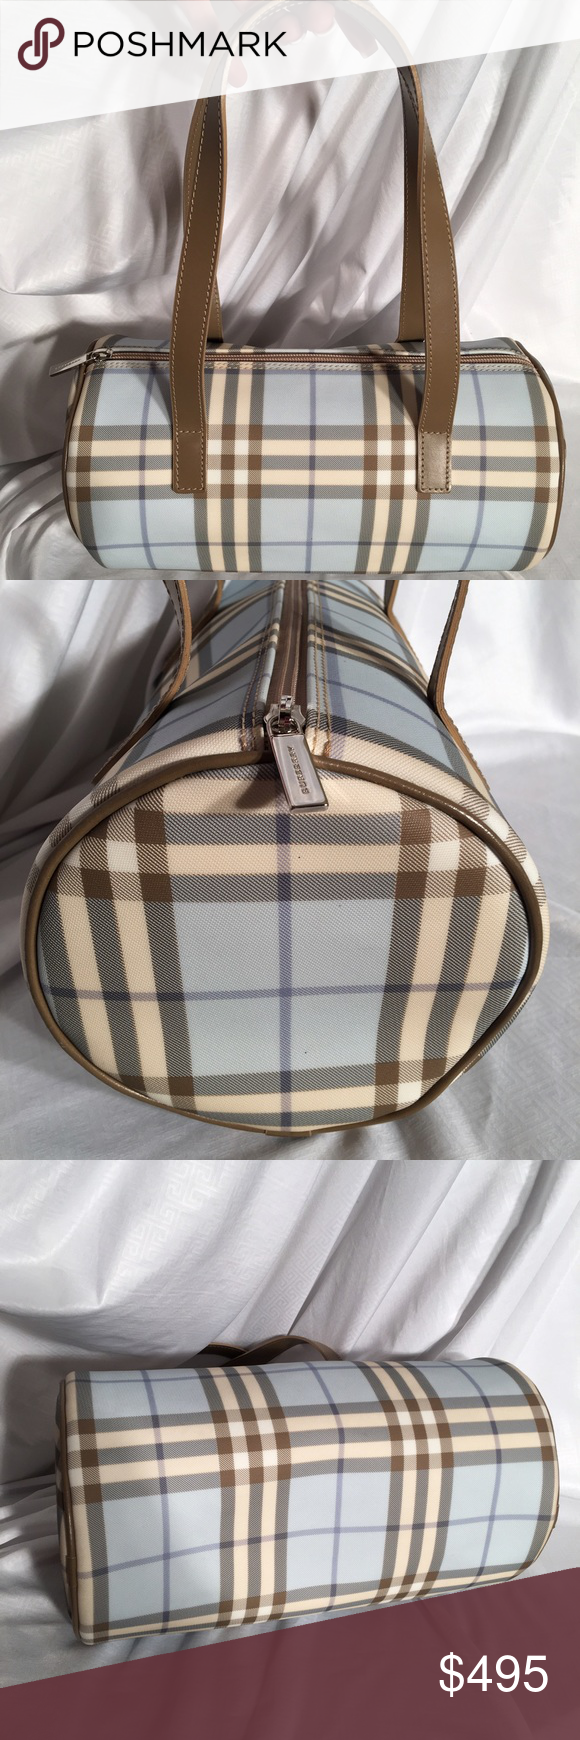 Burberry Absolutely Beautiful Baby Blue Nova Check Burberry Absolutely Beautiful Baby Blue Nova Check Barrel bag, virtually brand new. I cannot find any markings or imperfections at all. 11.5 inches wide X 6 inches deep x 6 inches high. Burberry Bags